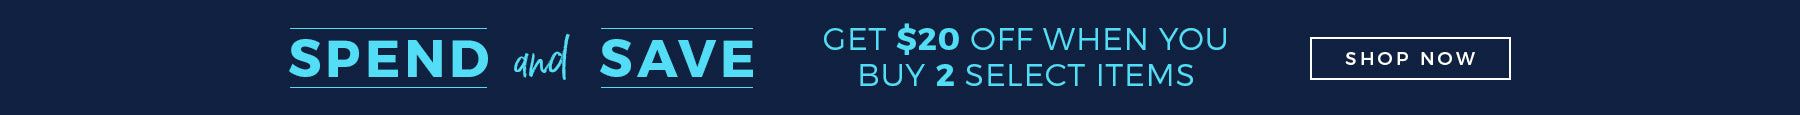 SPEND AND SAVE: GET $20 OFF WHEN YOU BUY 2 SELECT ITEMS  - SHOP NOW